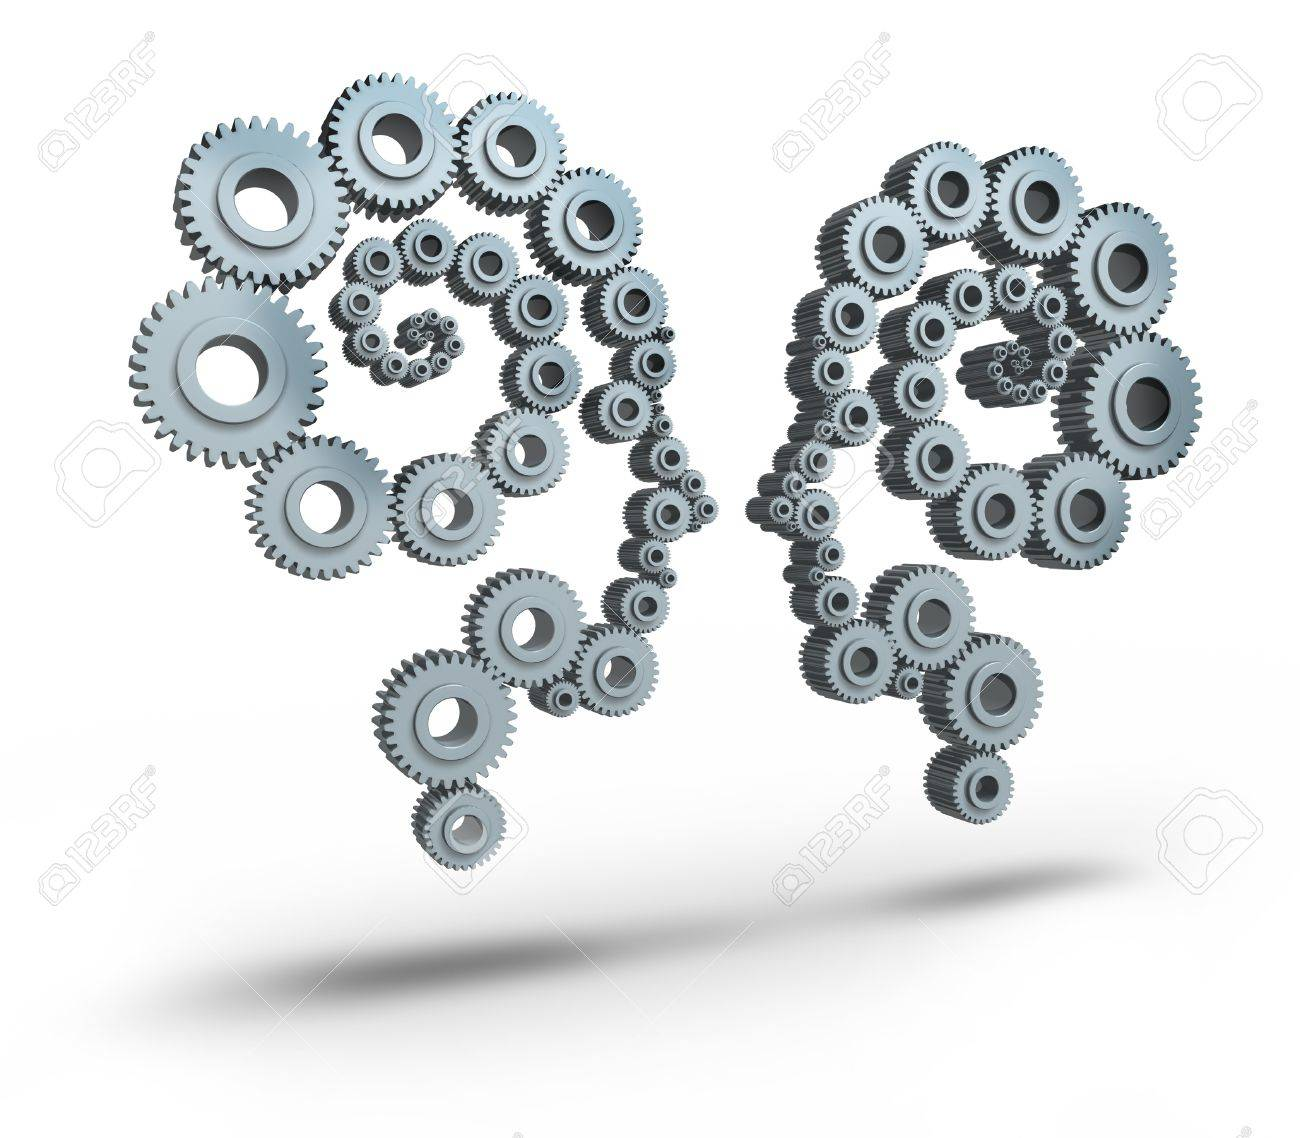 Communication industry and business networking technologies with two groups of gears and cogs in the shape a a human head face to face as a team partnership for success Stock Photo - 16920763